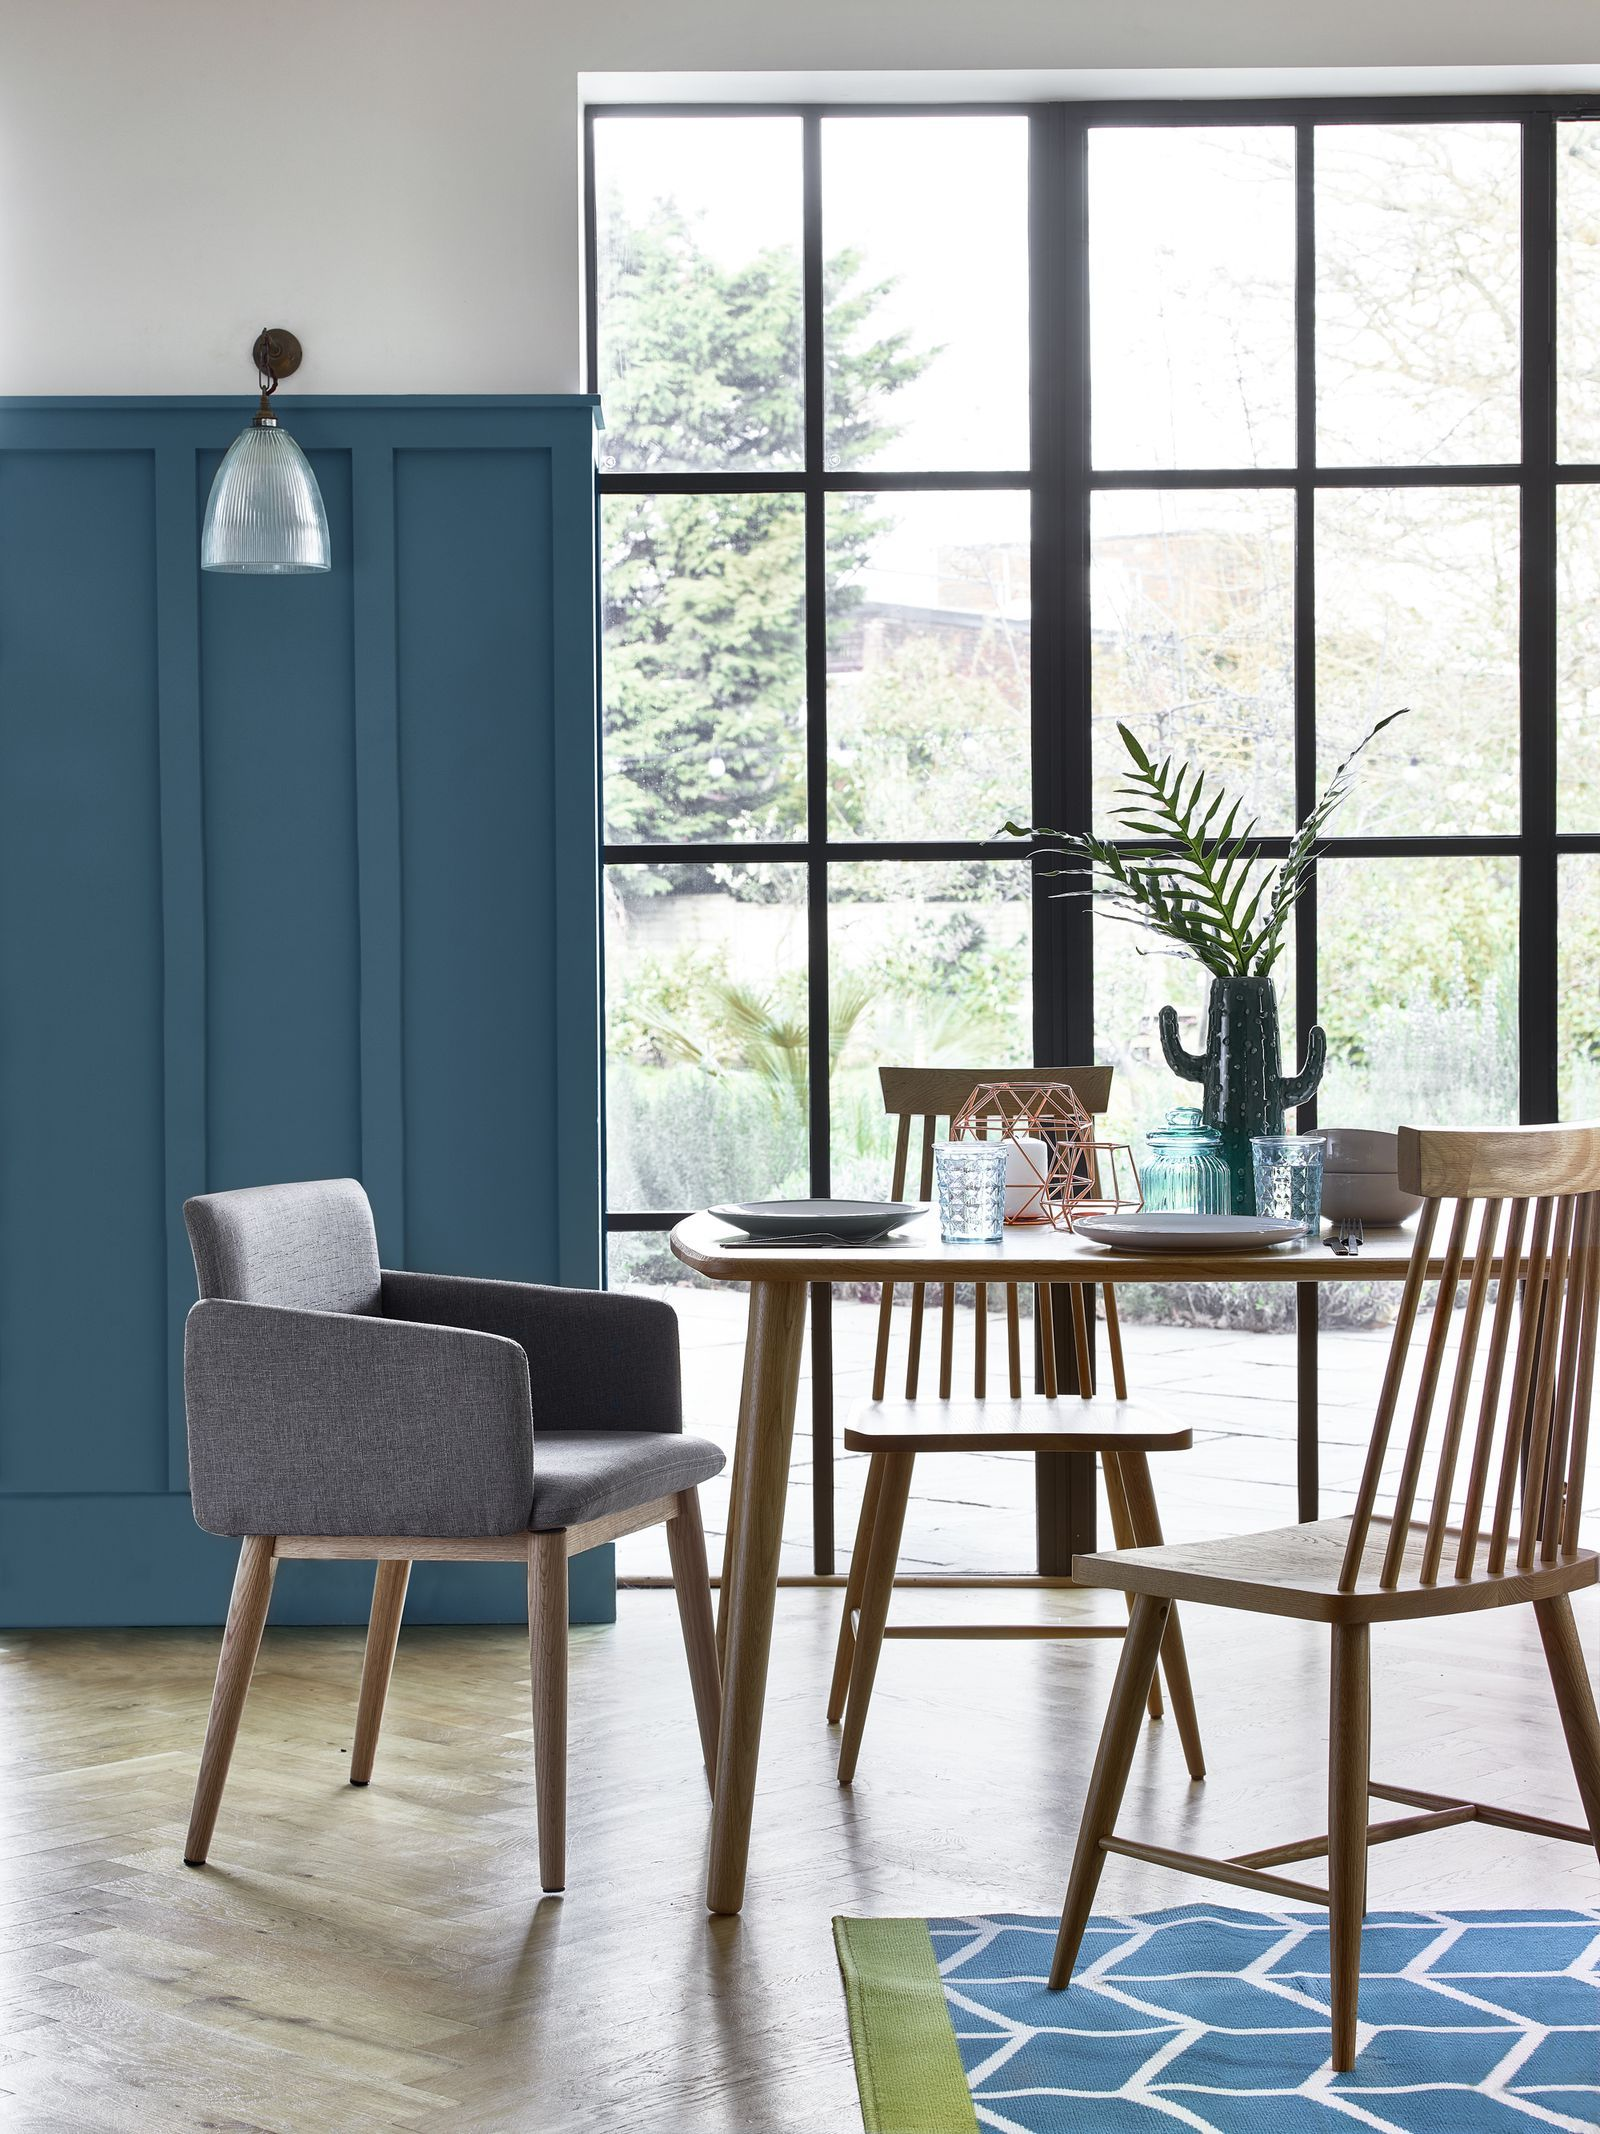 Dining Room Design Trends: 10 Key Interior Trends For Autumn Winter 2019 (With Images